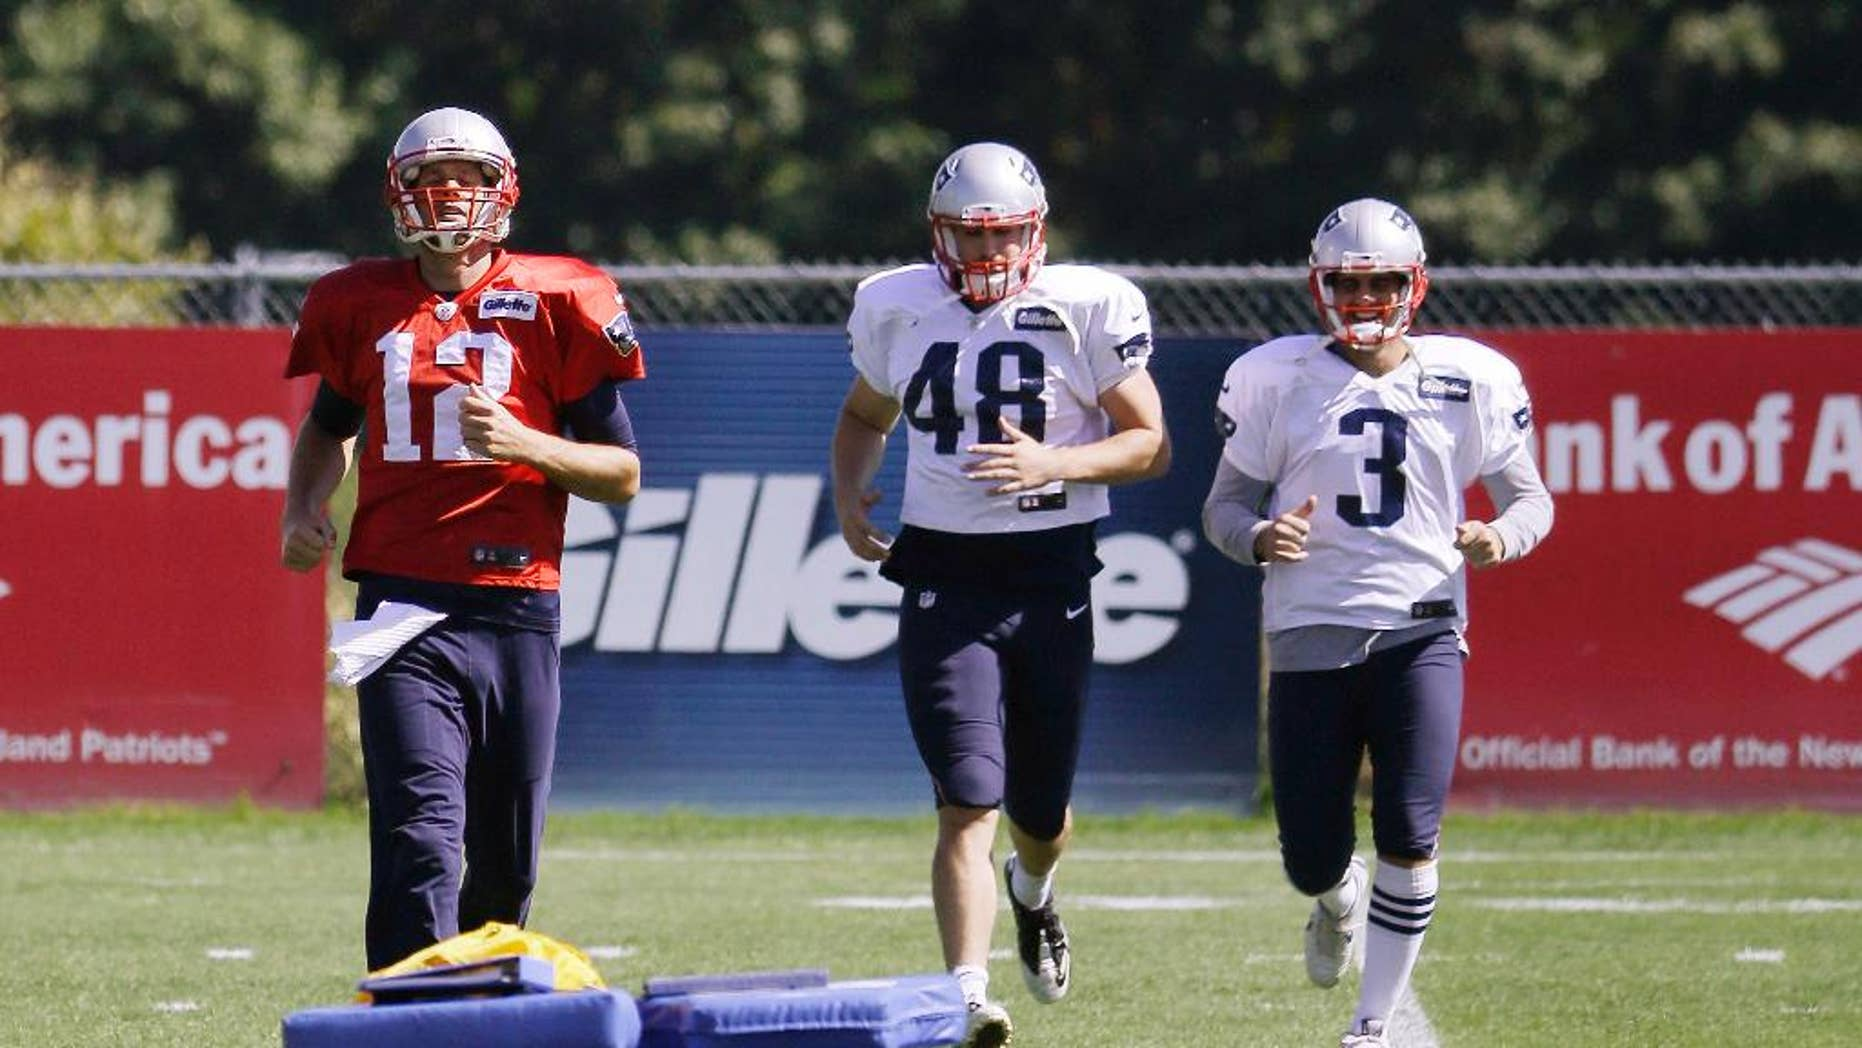 New England Patriots quarterback Tom Brady (12), long snapper Danny Aiken (48) and kicker Stephen Gostkowski (3) run during a stretching session before practice begins at the NFL football team's facility Wednesday, Sept. 17, 2014 in Foxborough, Mass. (AP Photo/Stephan Savoia)